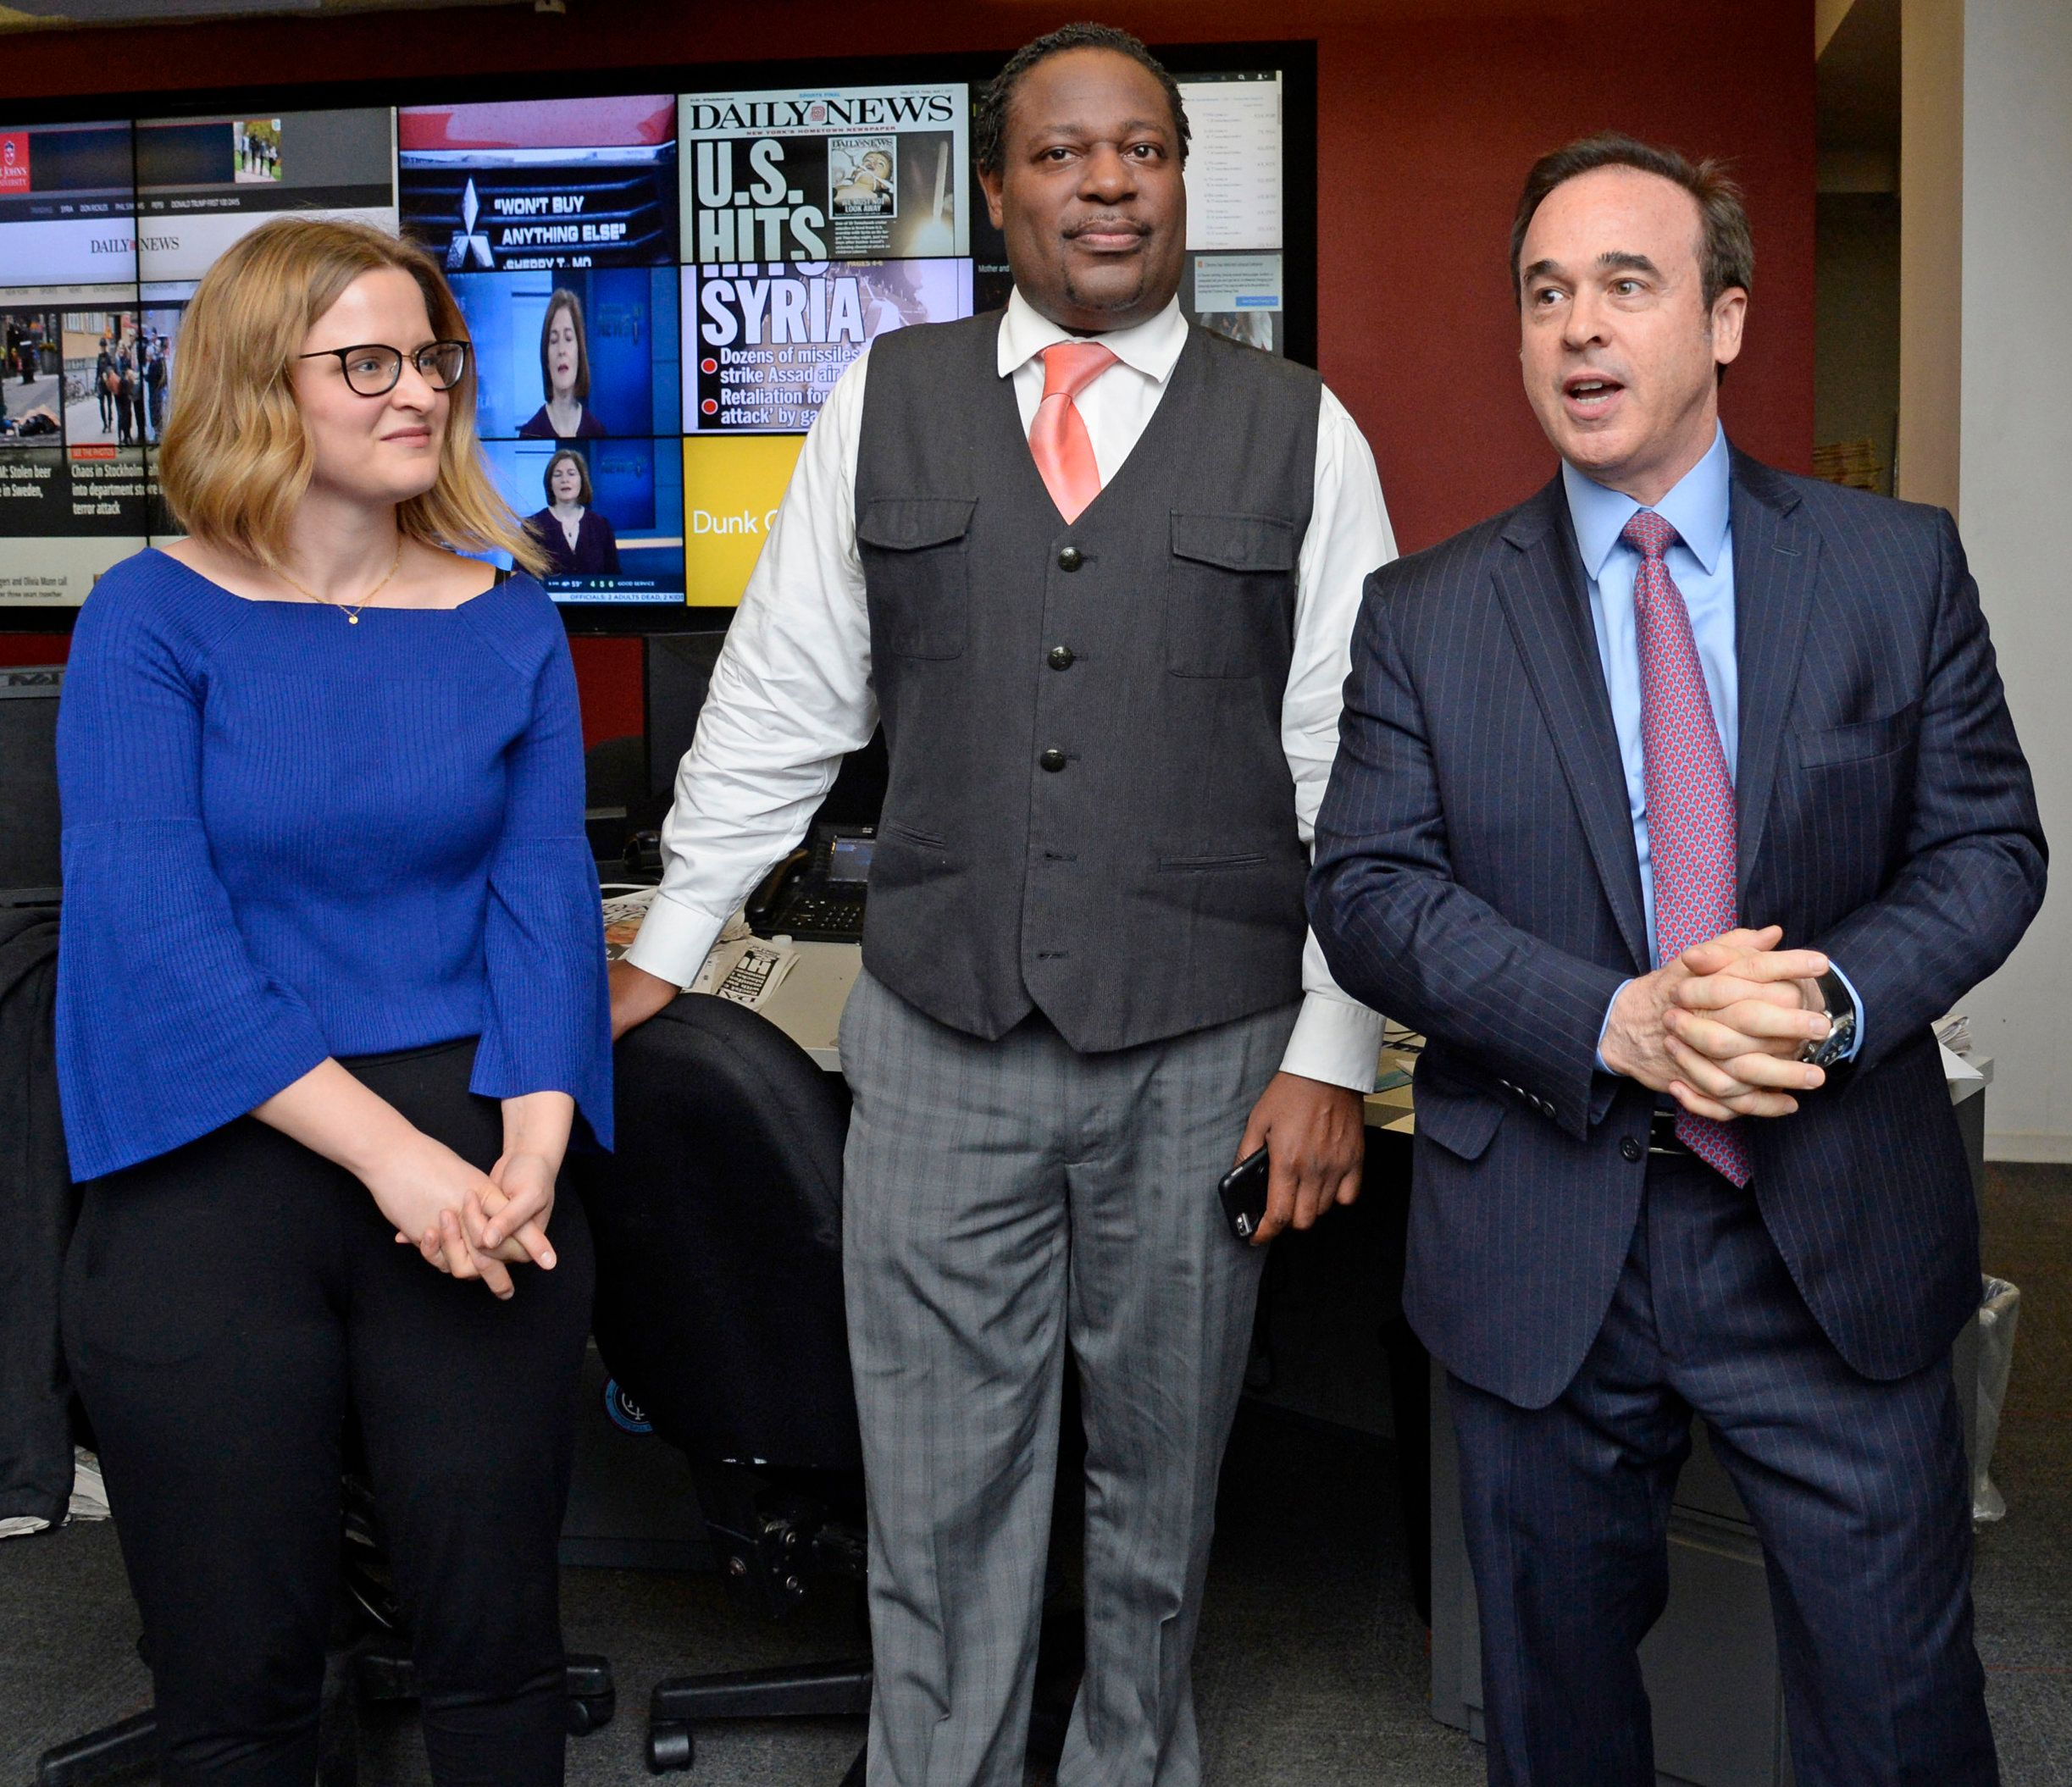 (left-right) Sarah Ryley celebrates receiving a Pulitzer Prize with Daily News News Editor Robert Moore and Co-Chairman and Co-Publisher Eric Gertler on Monday, April 10, 2017. (Photo by Jefferson Siegel/NY Daily News via Getty Images)